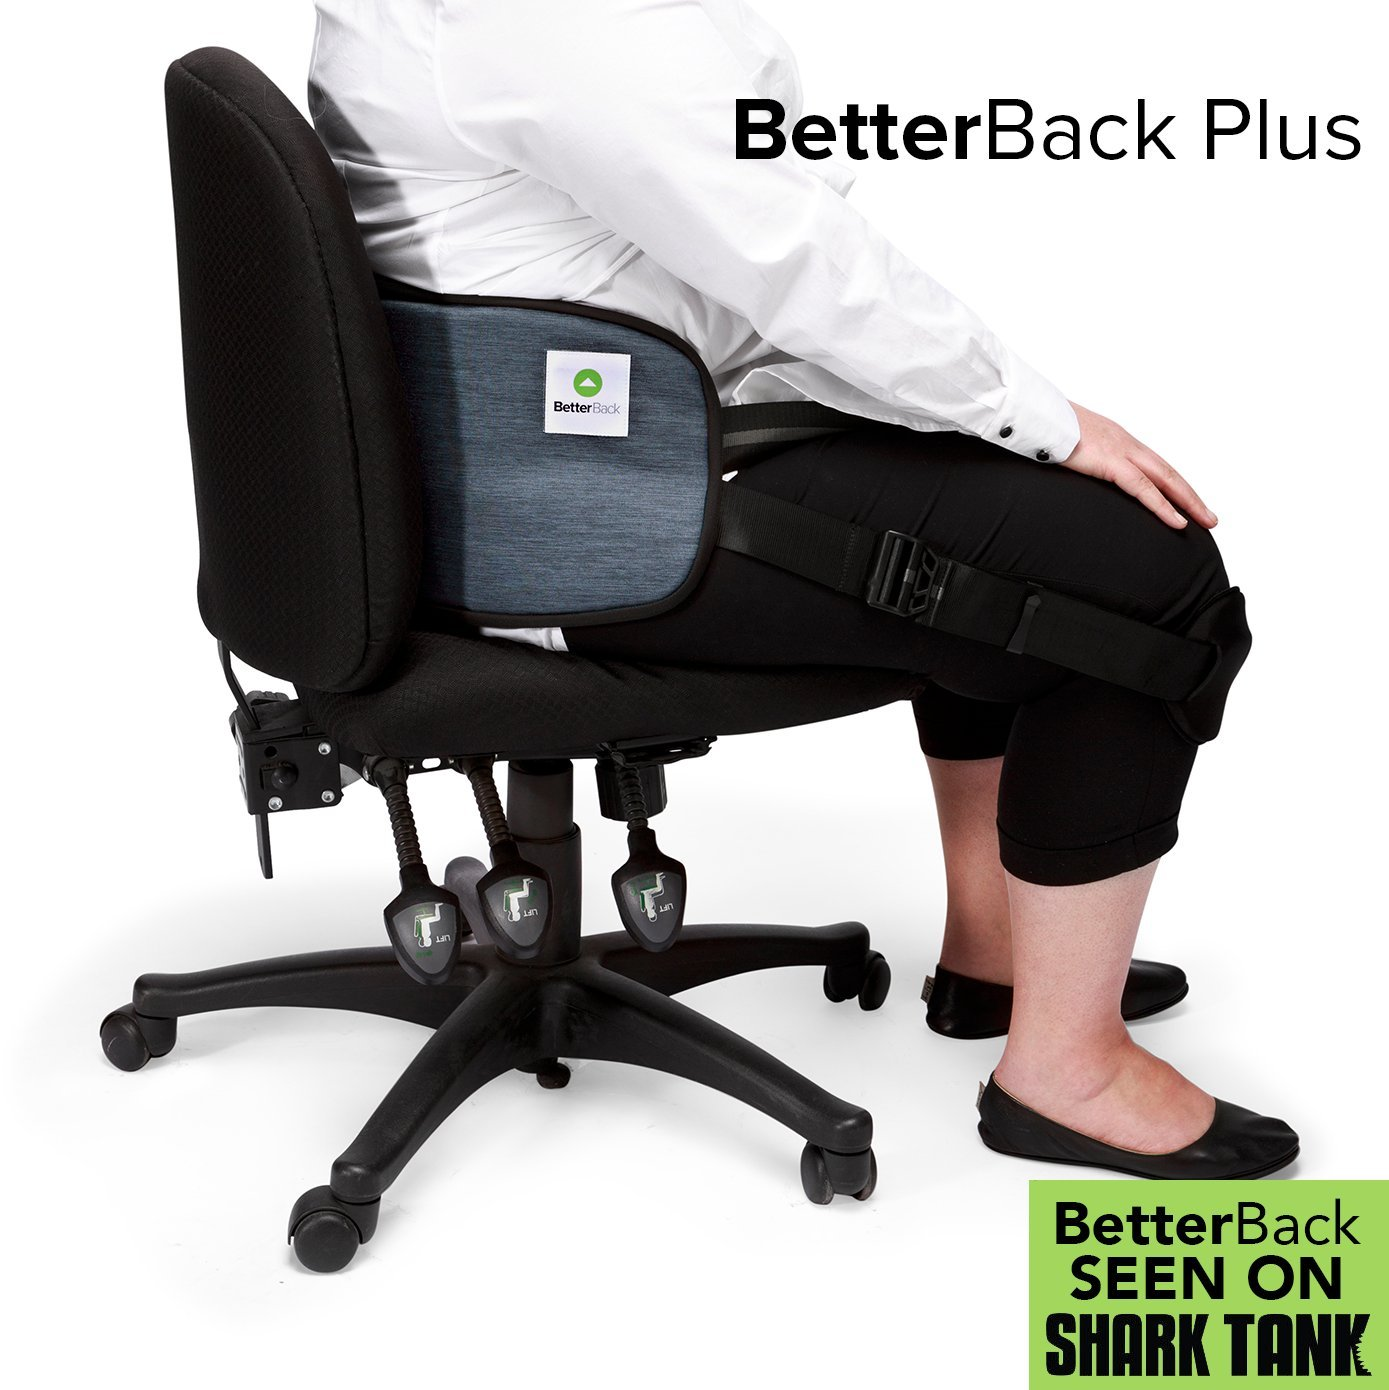 BetterBack Plus - Ease Back Pain & Effortlessly Sit in Perfect Posture - with NASA Memory Foam Padding - Make Every Chair Ergonomic - Fits Women and Men with 37-55'' Waist